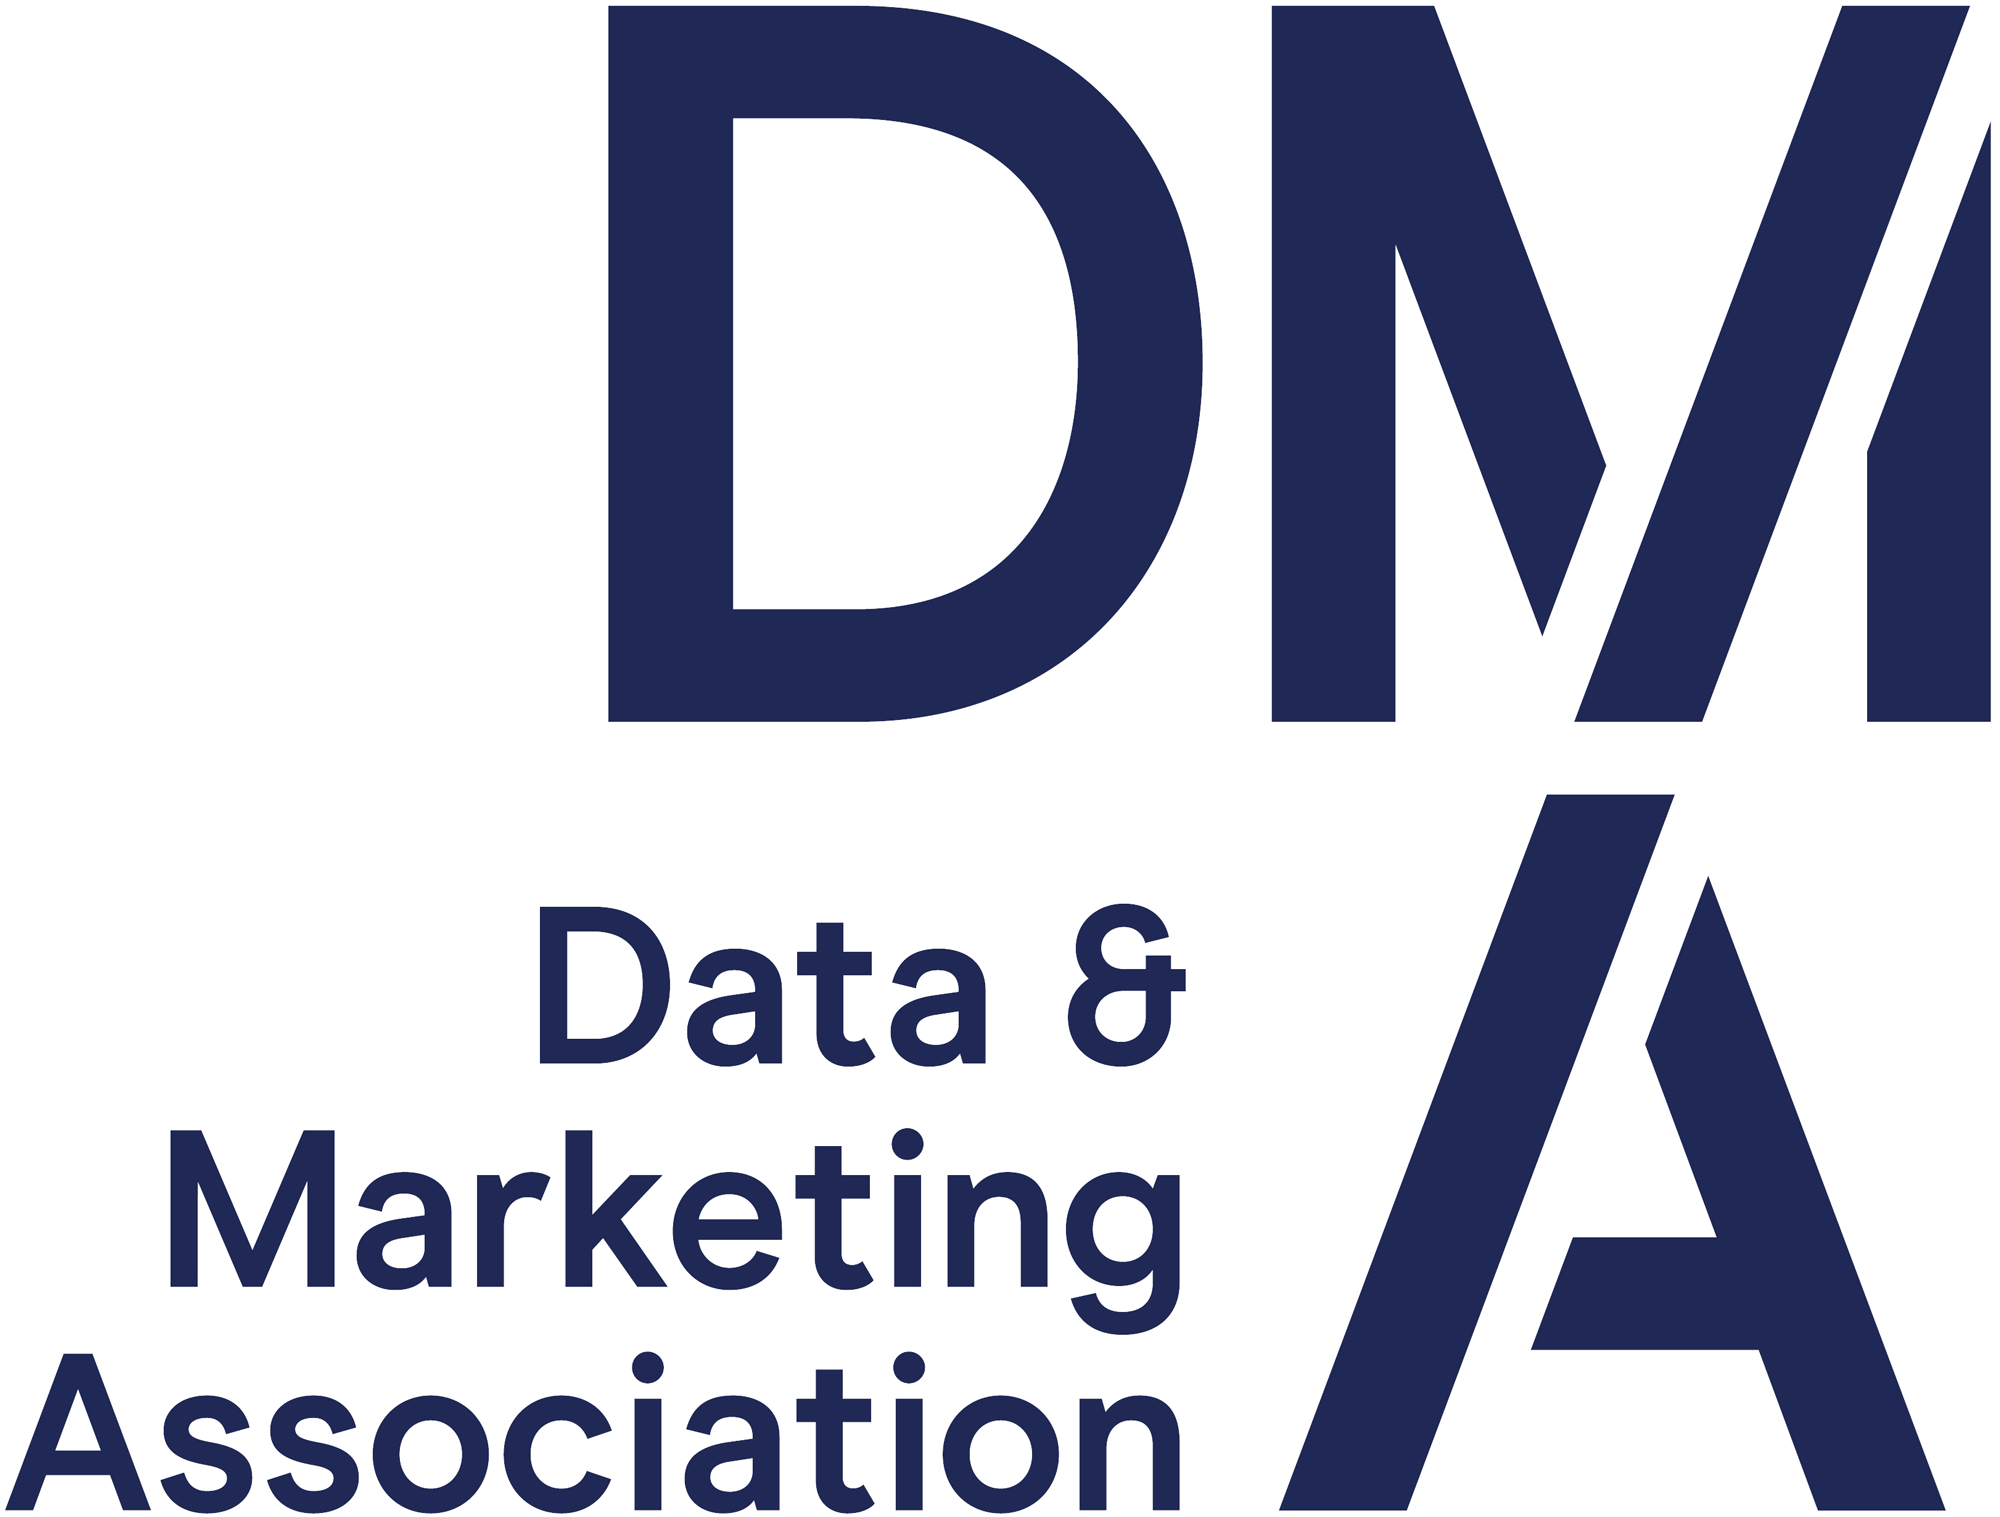 data_marketing_association_logo.png